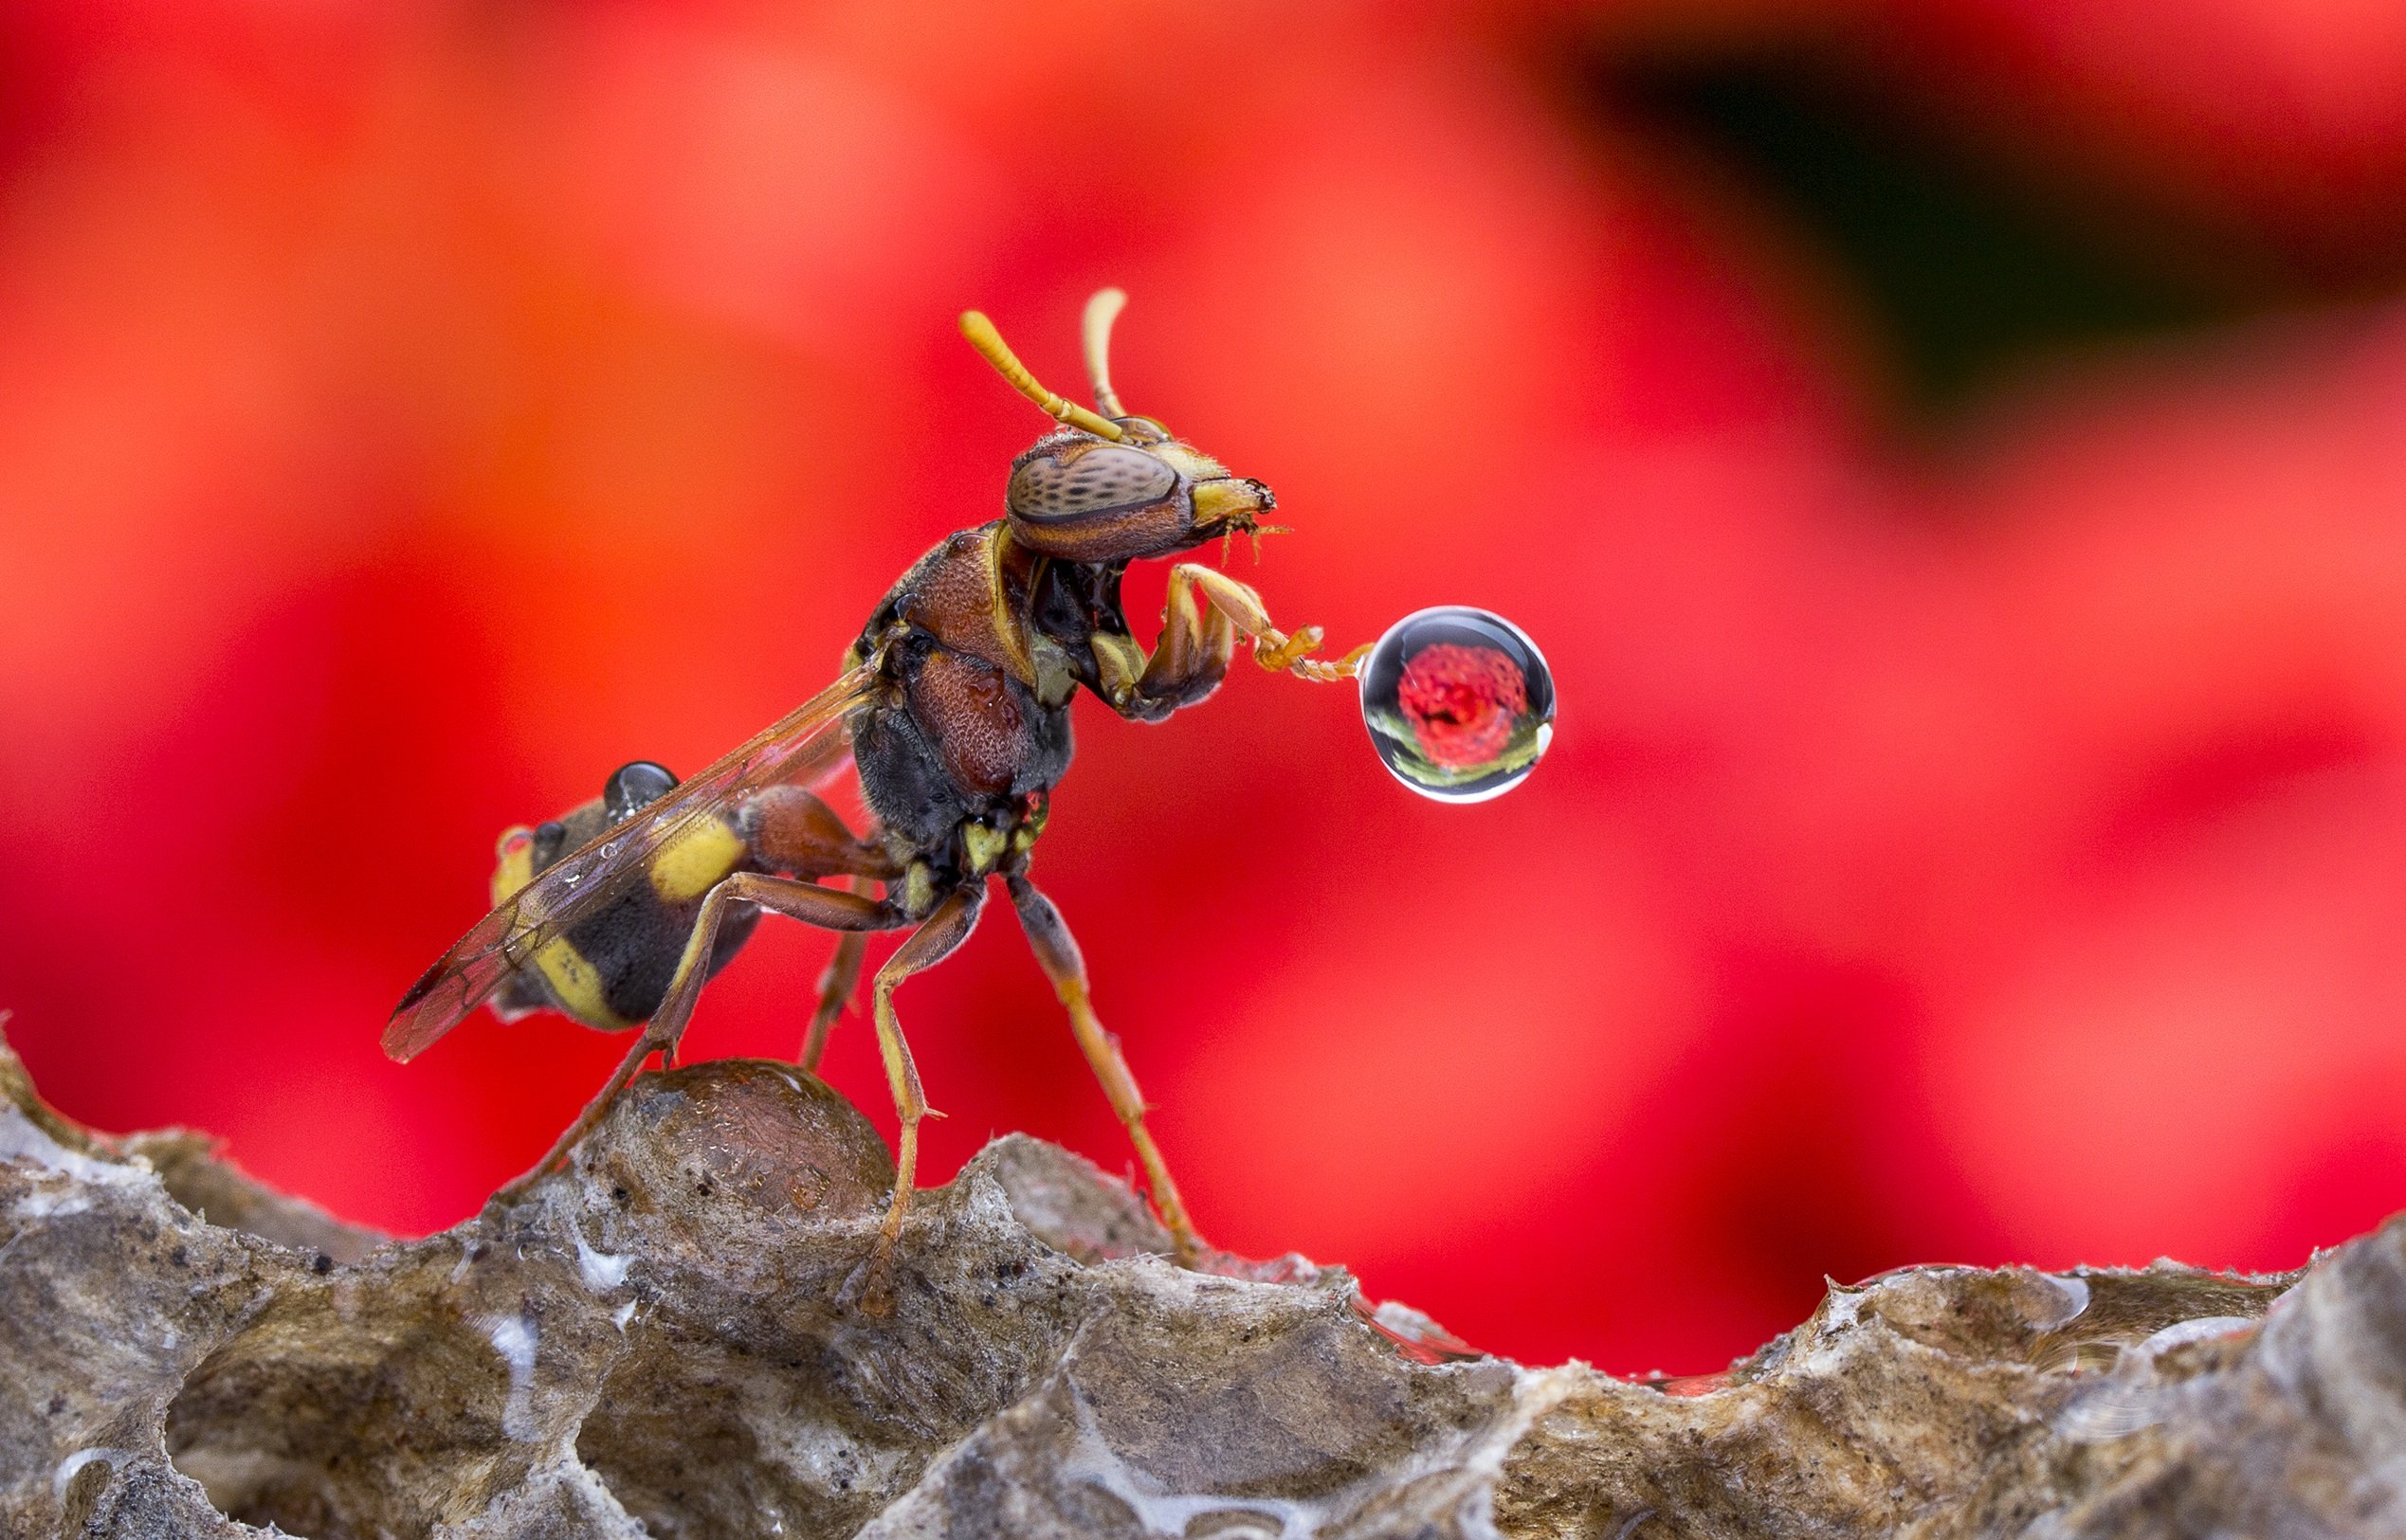 #macro#wasp#waterbubble#reflection#colors, Lim Choo How